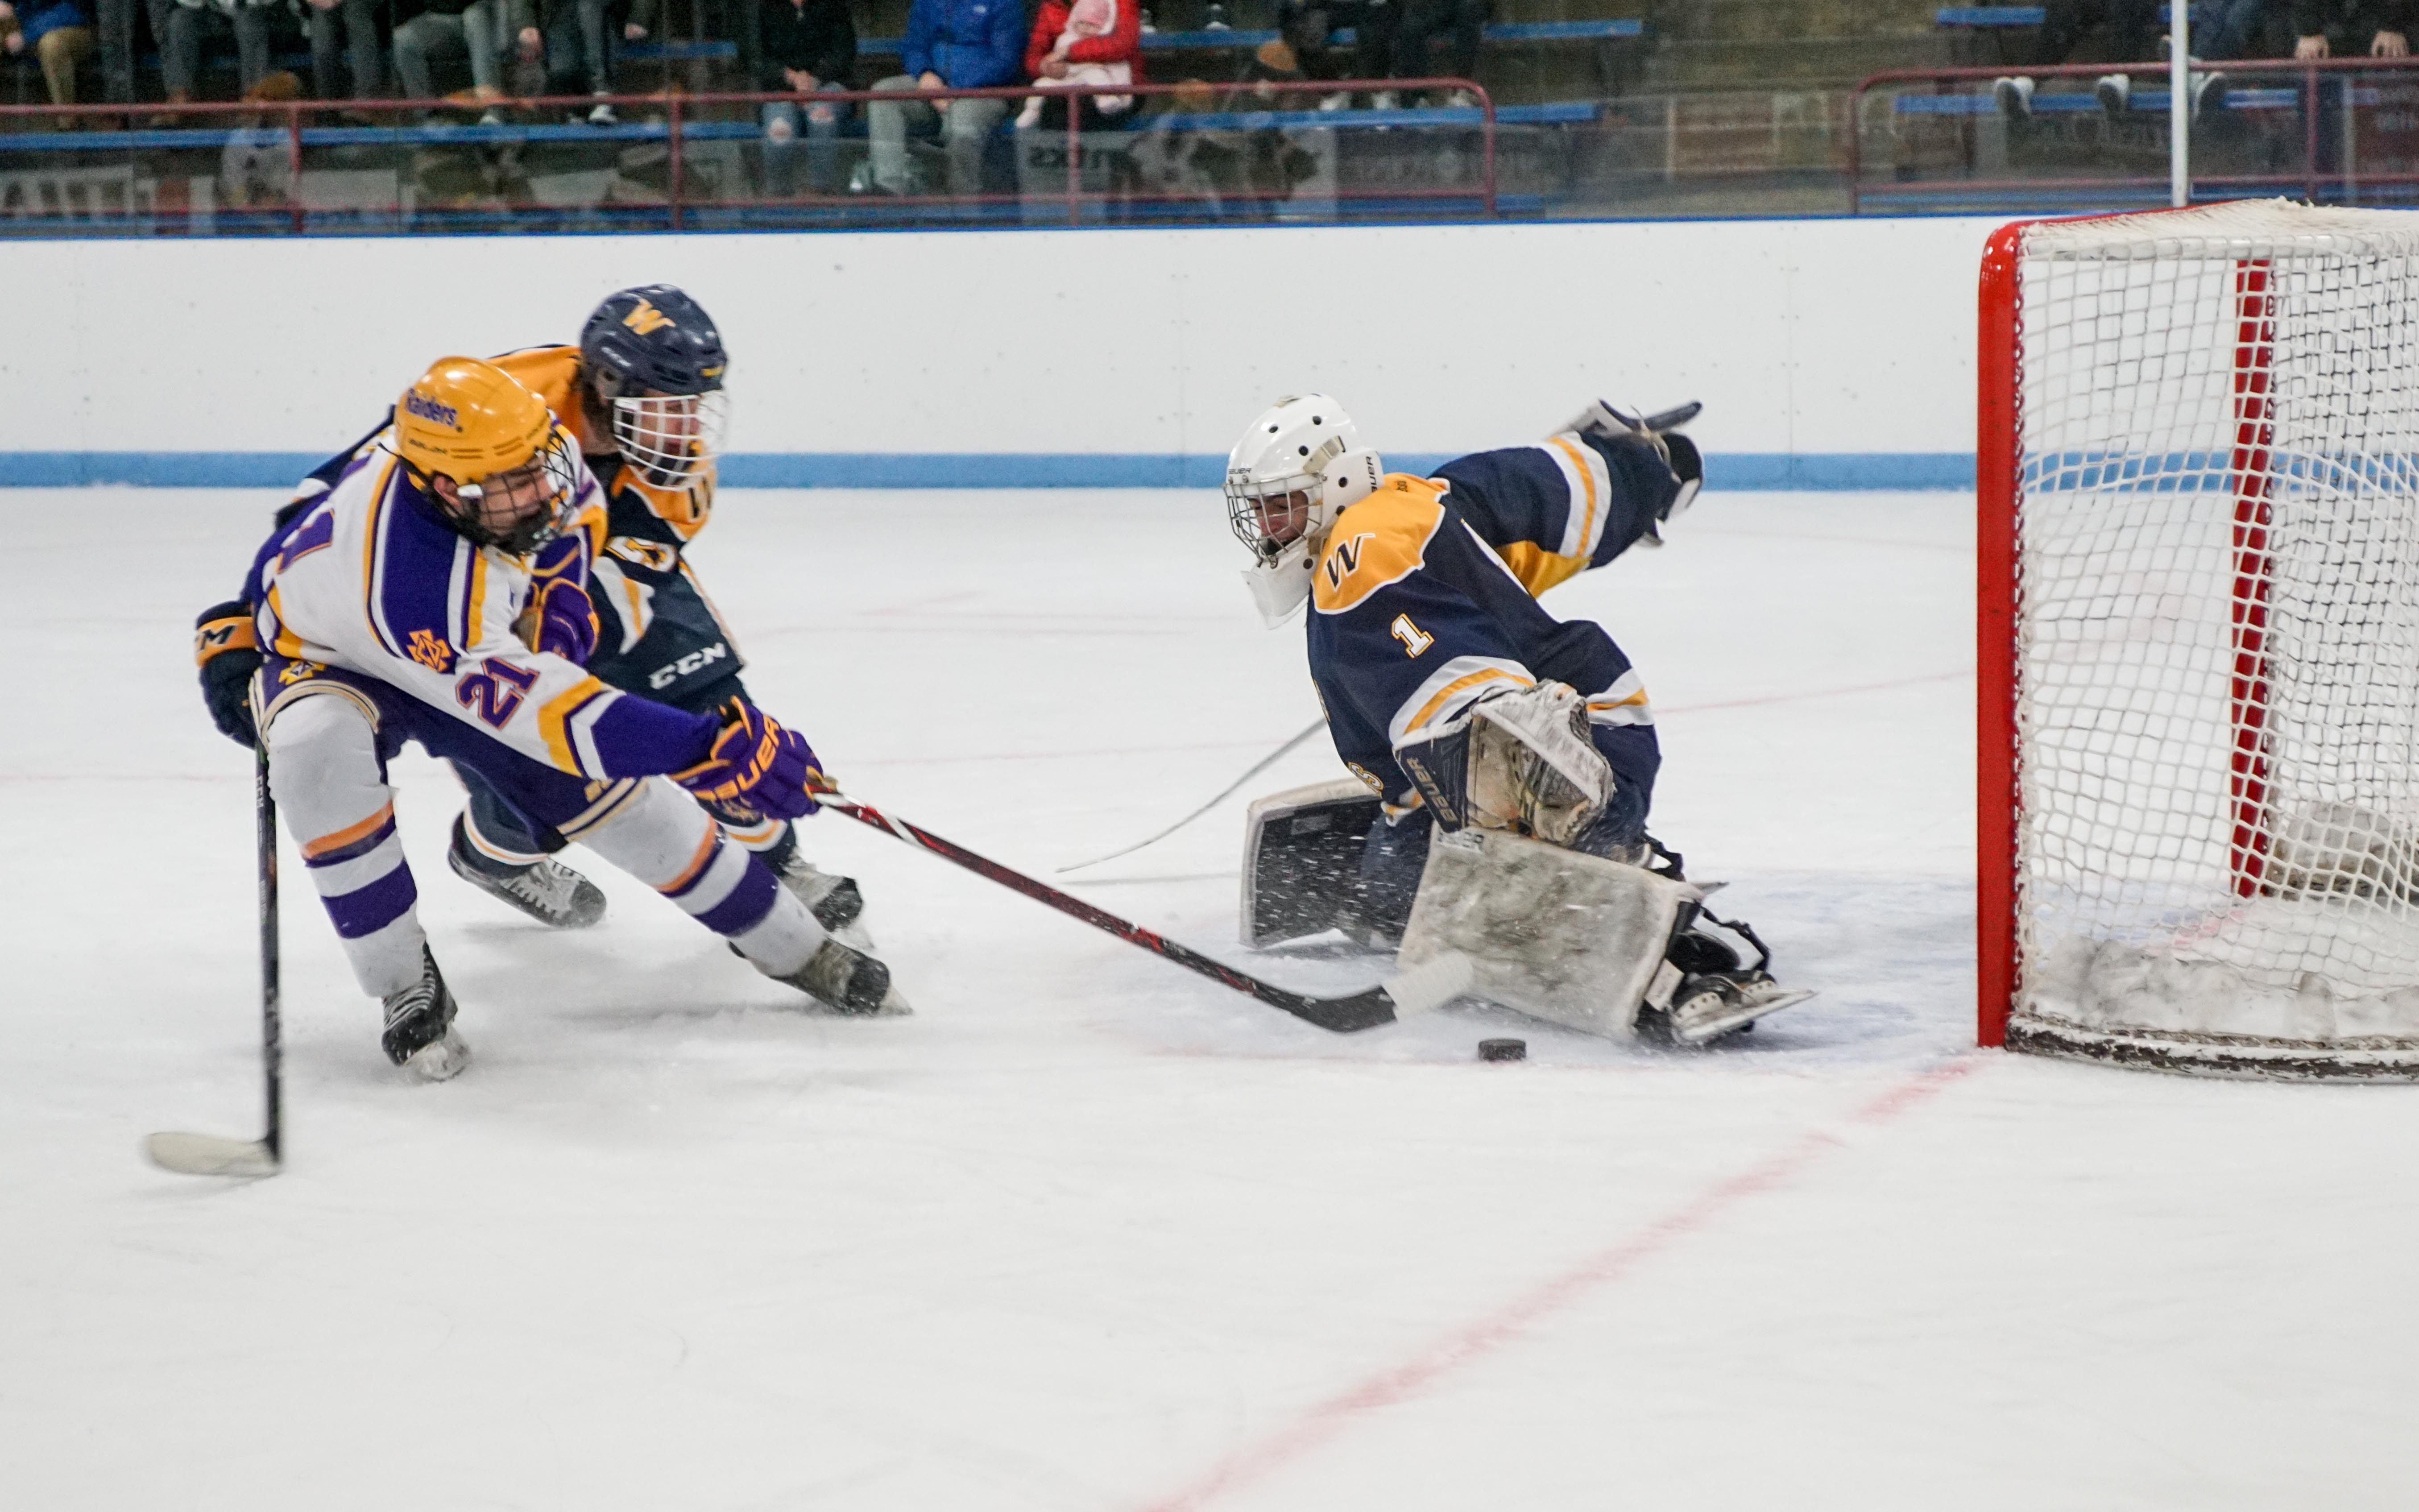 Wayzata goalie Trevor Wong stops Cretin-Derham Hall's Joe Buckingham (21) from scoring with a minute remaining in the game, helping the Trojans escape with a 3-2 victory in a Class 2A, Section 6 semifinal on Feb 24. Photo by Korey McDermott, SportsEngine